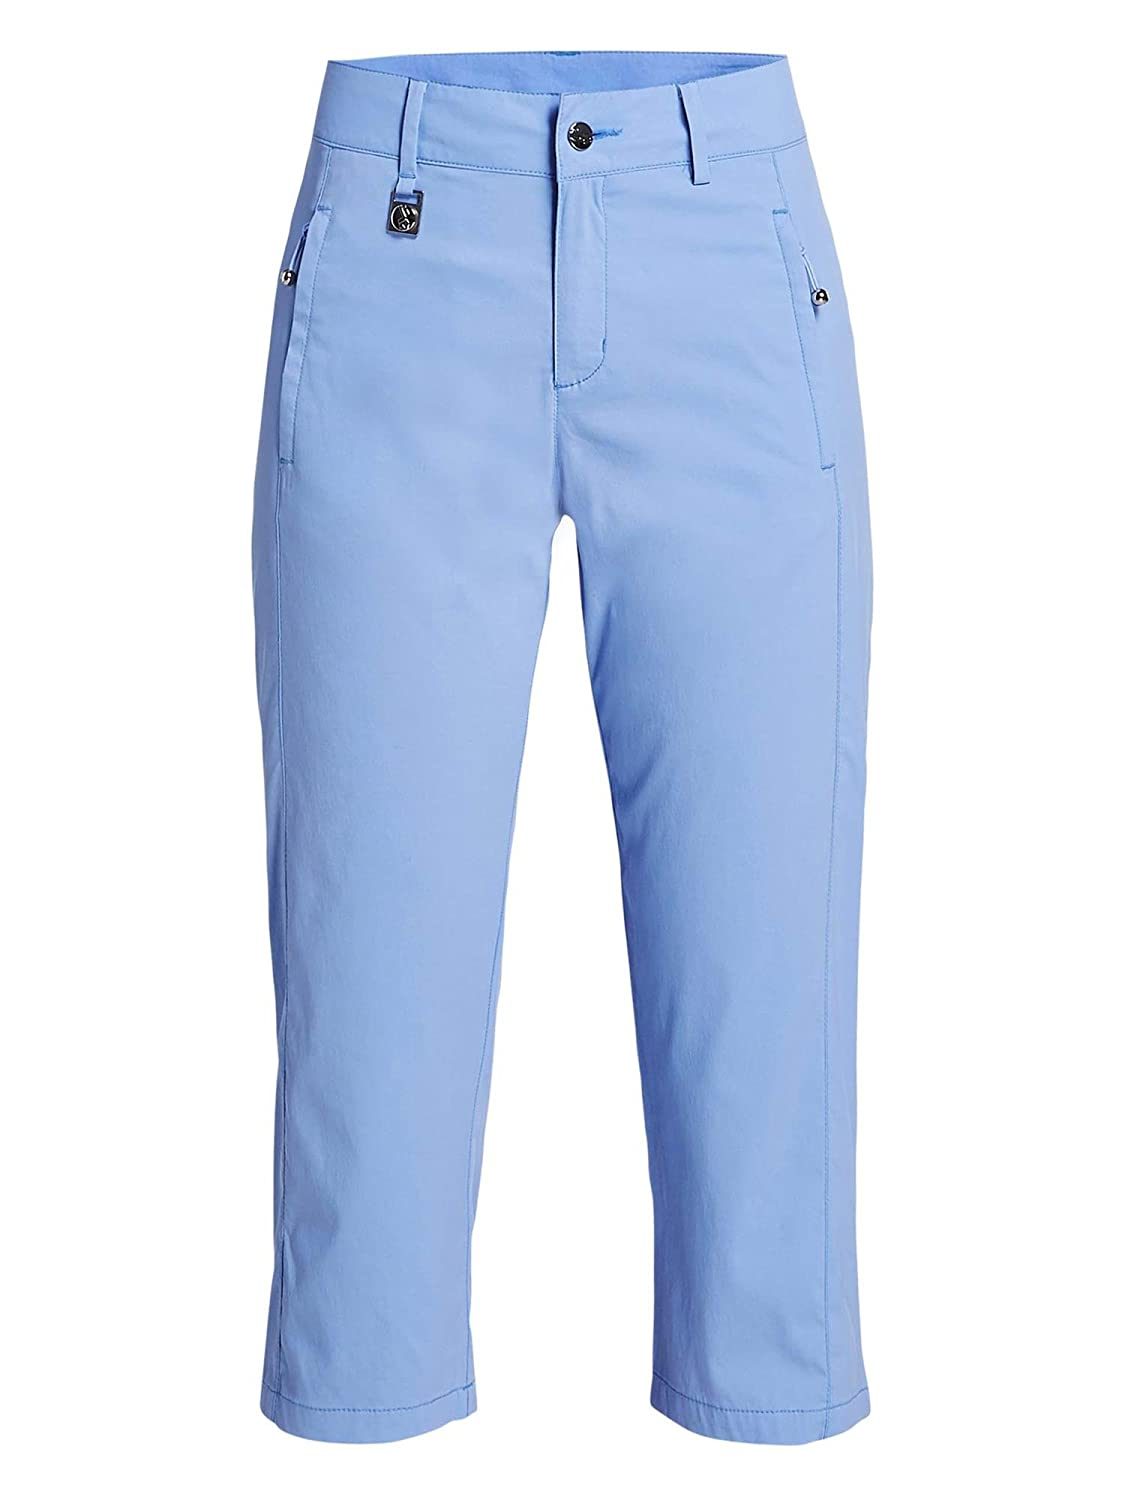 4f67983a86b4 Rohnisch Ladies Active Golf Capri Blue Shell-36: Amazon.co.uk: Clothing